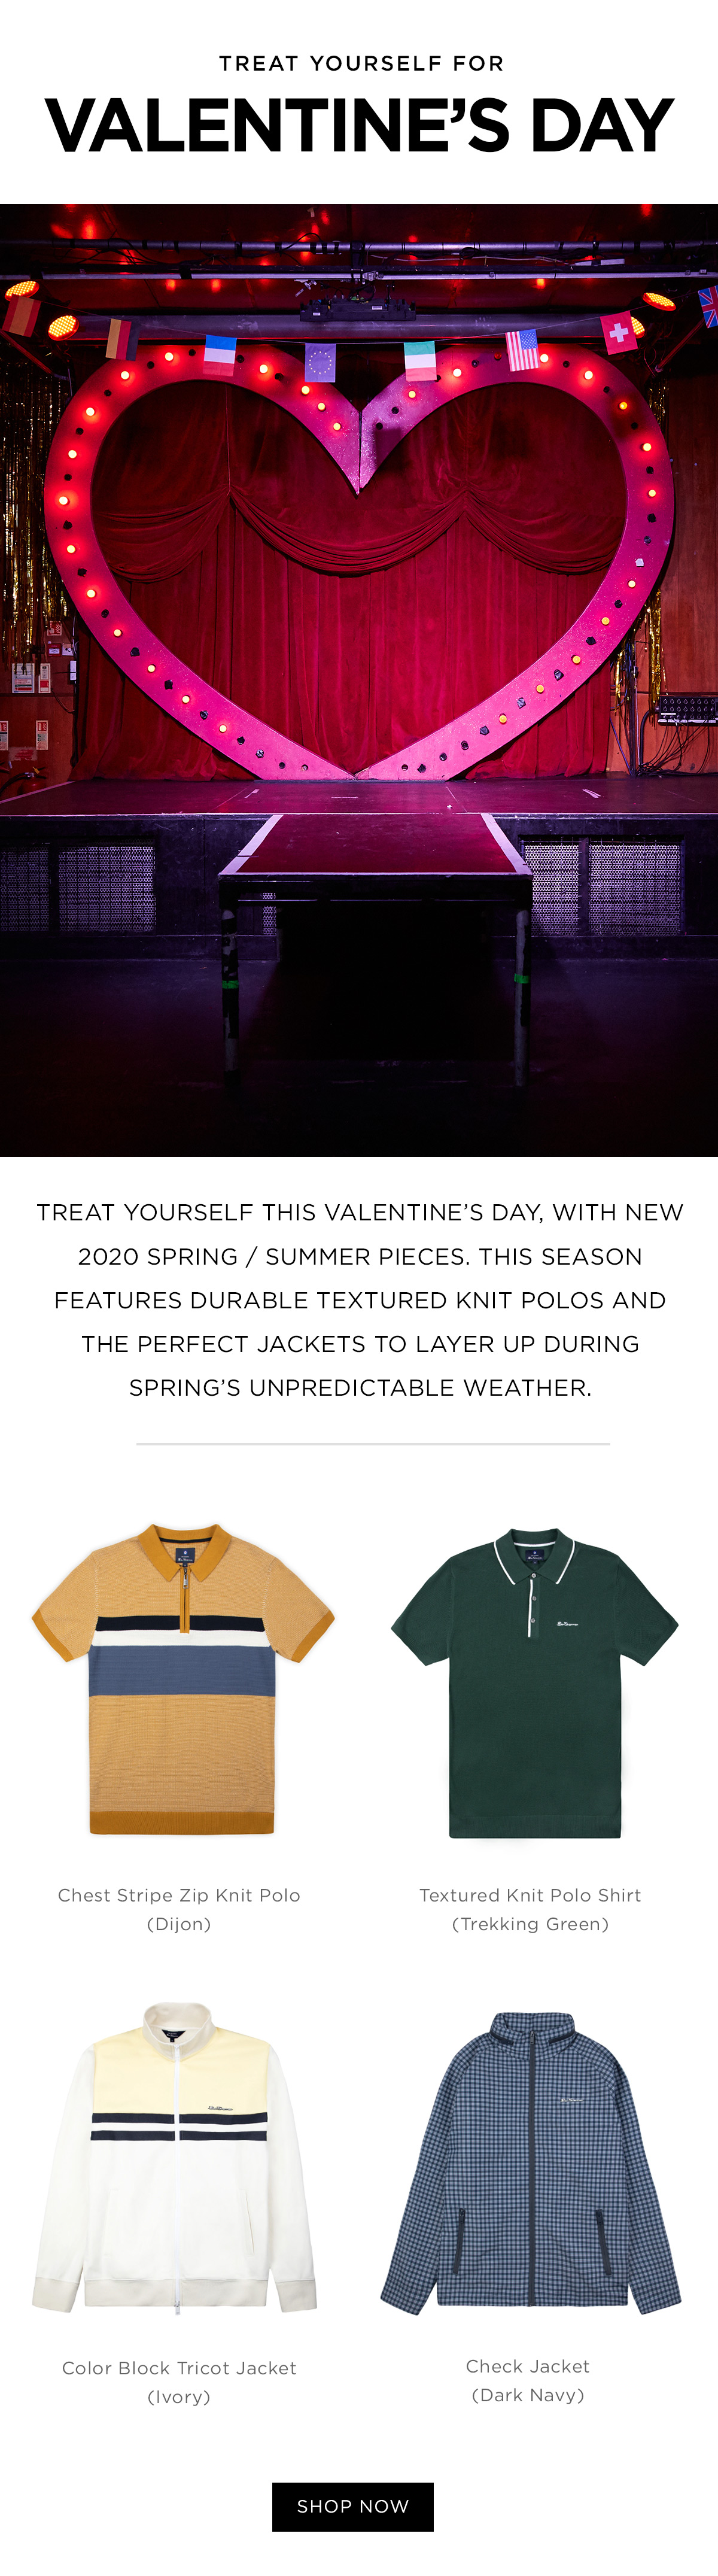 Treat Yourself | Valentine's Day | 2020 spring/summer pieces | durable textured knit polos and the perfect jackets to layer up during spring's unpredictable weather